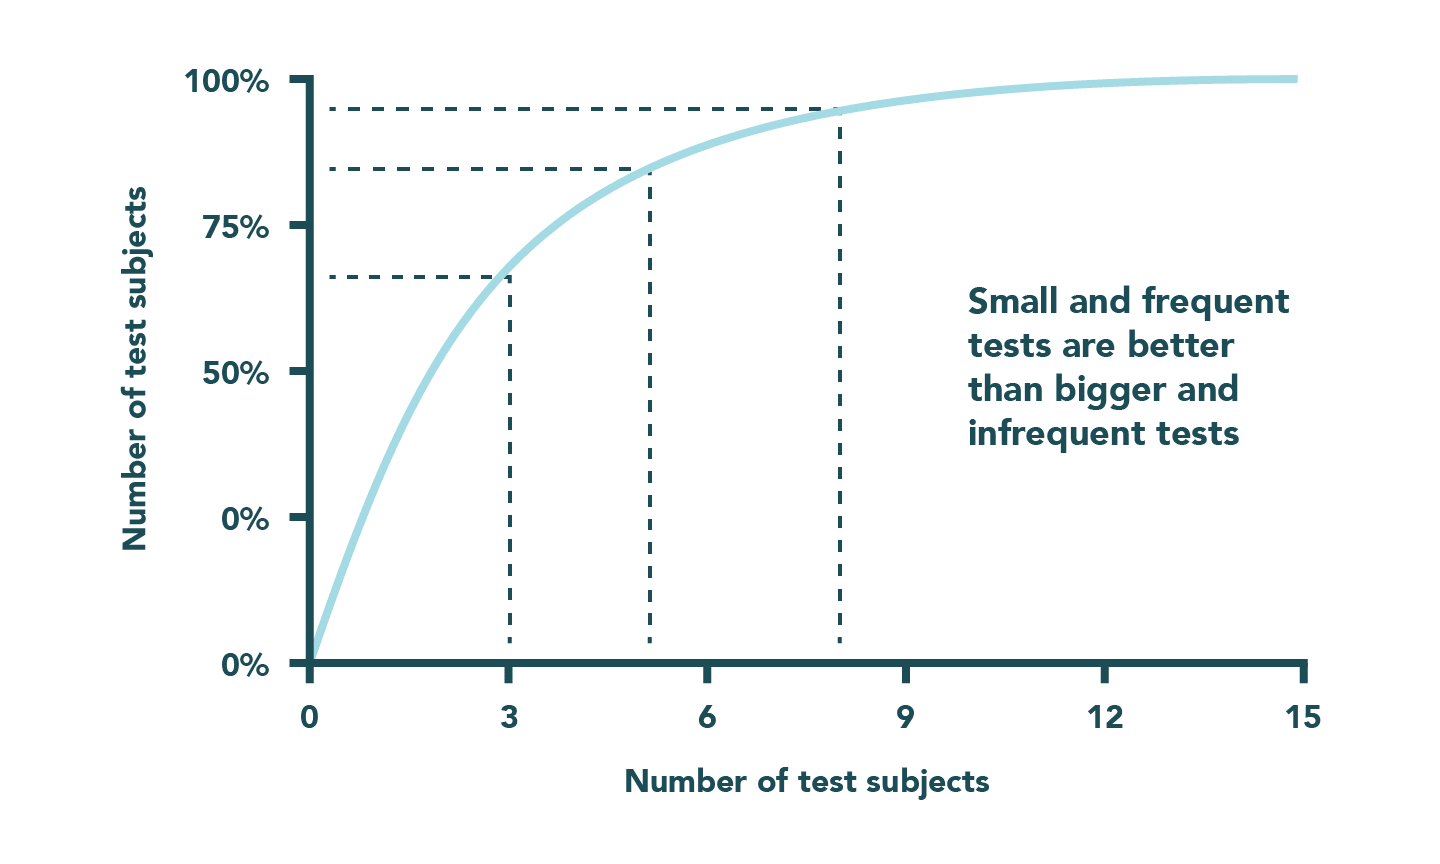 Chart showing how small and frequent tests are better than bigger and infrequent tests